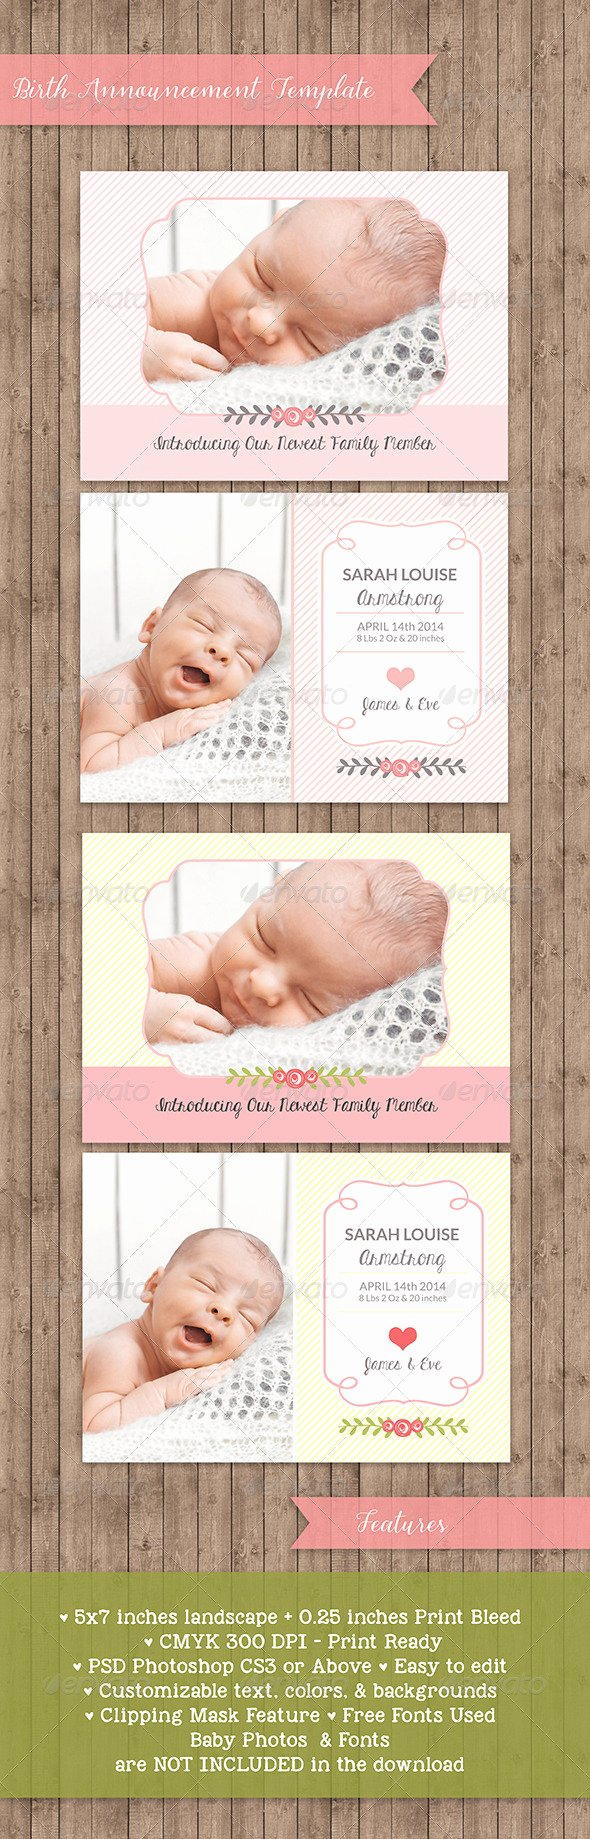 Chalkboard Baby Announcement Template Awesome Free Digital Birth Announcement Templates Chalkboard Dondrup